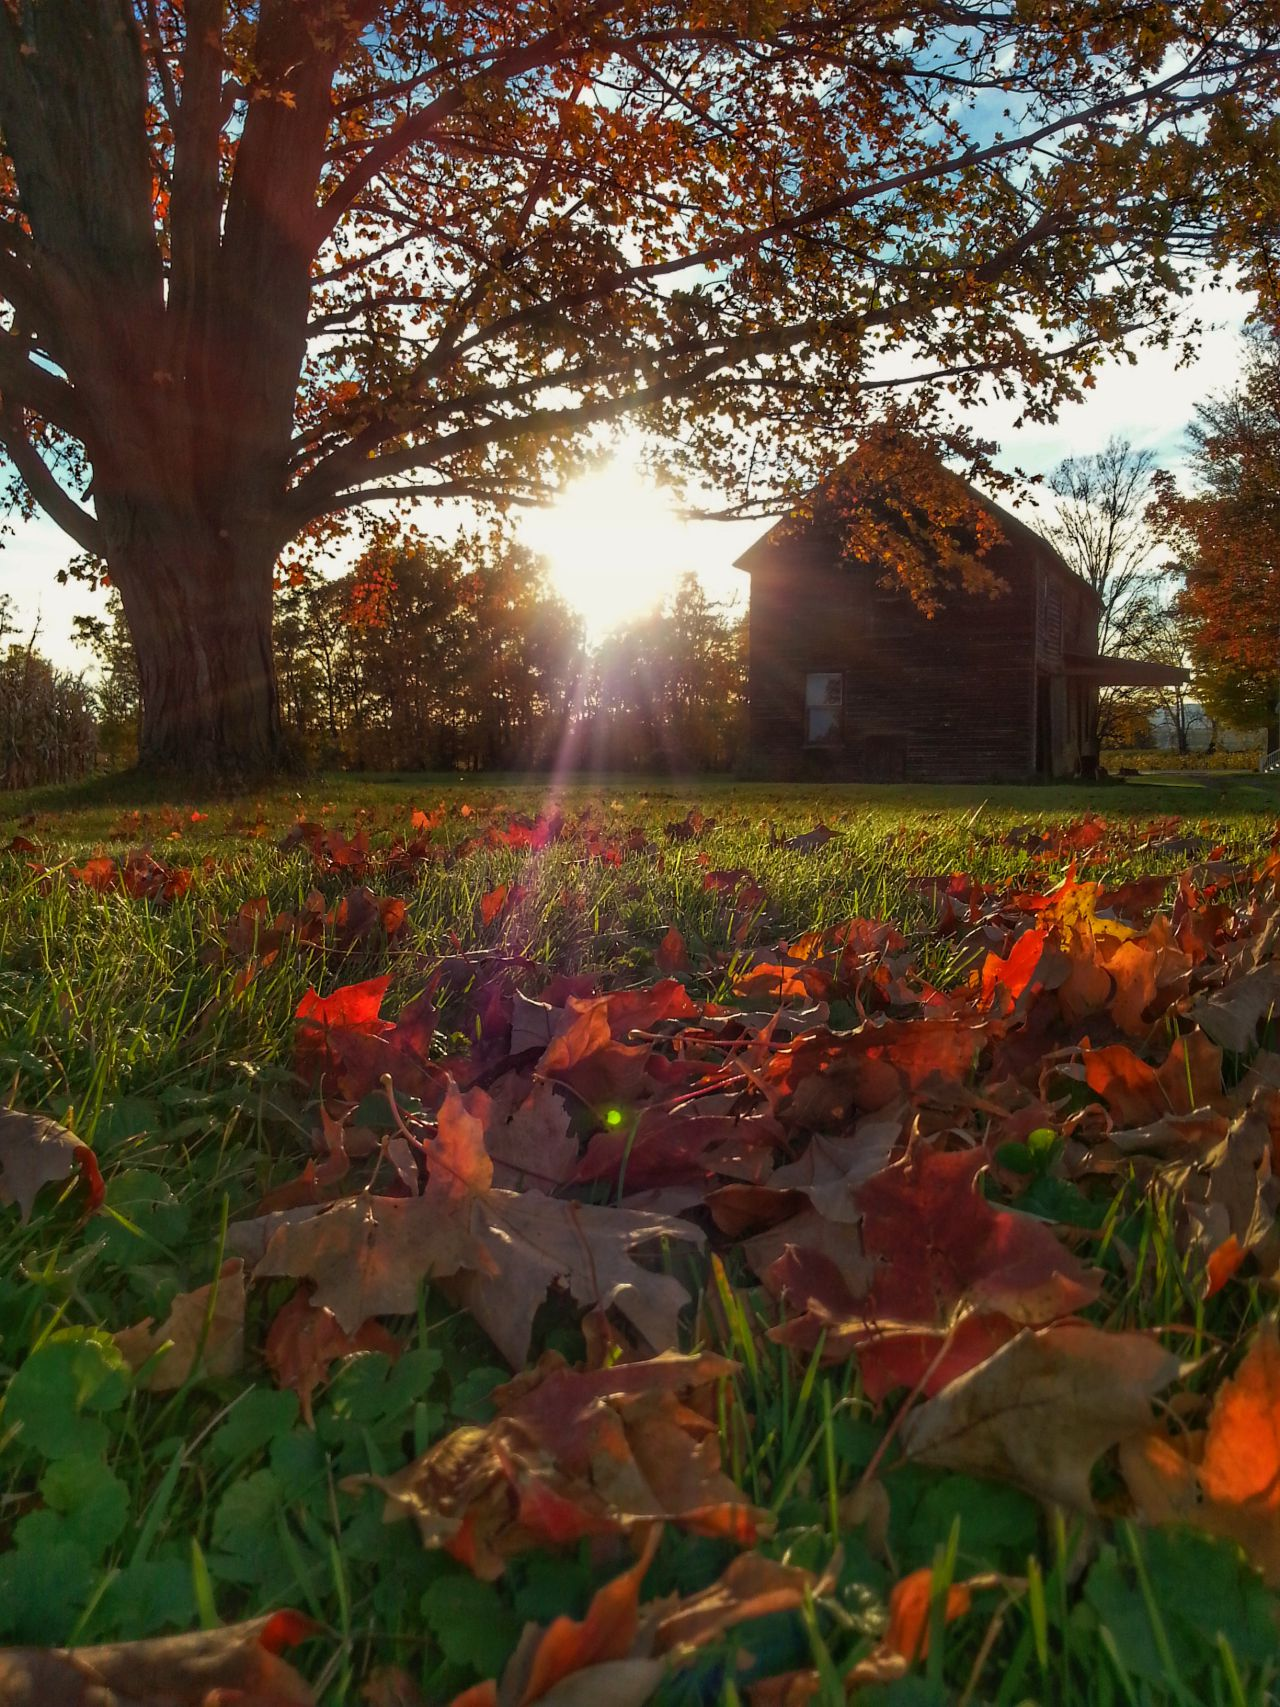 Capturing fall in Yates County (photo)